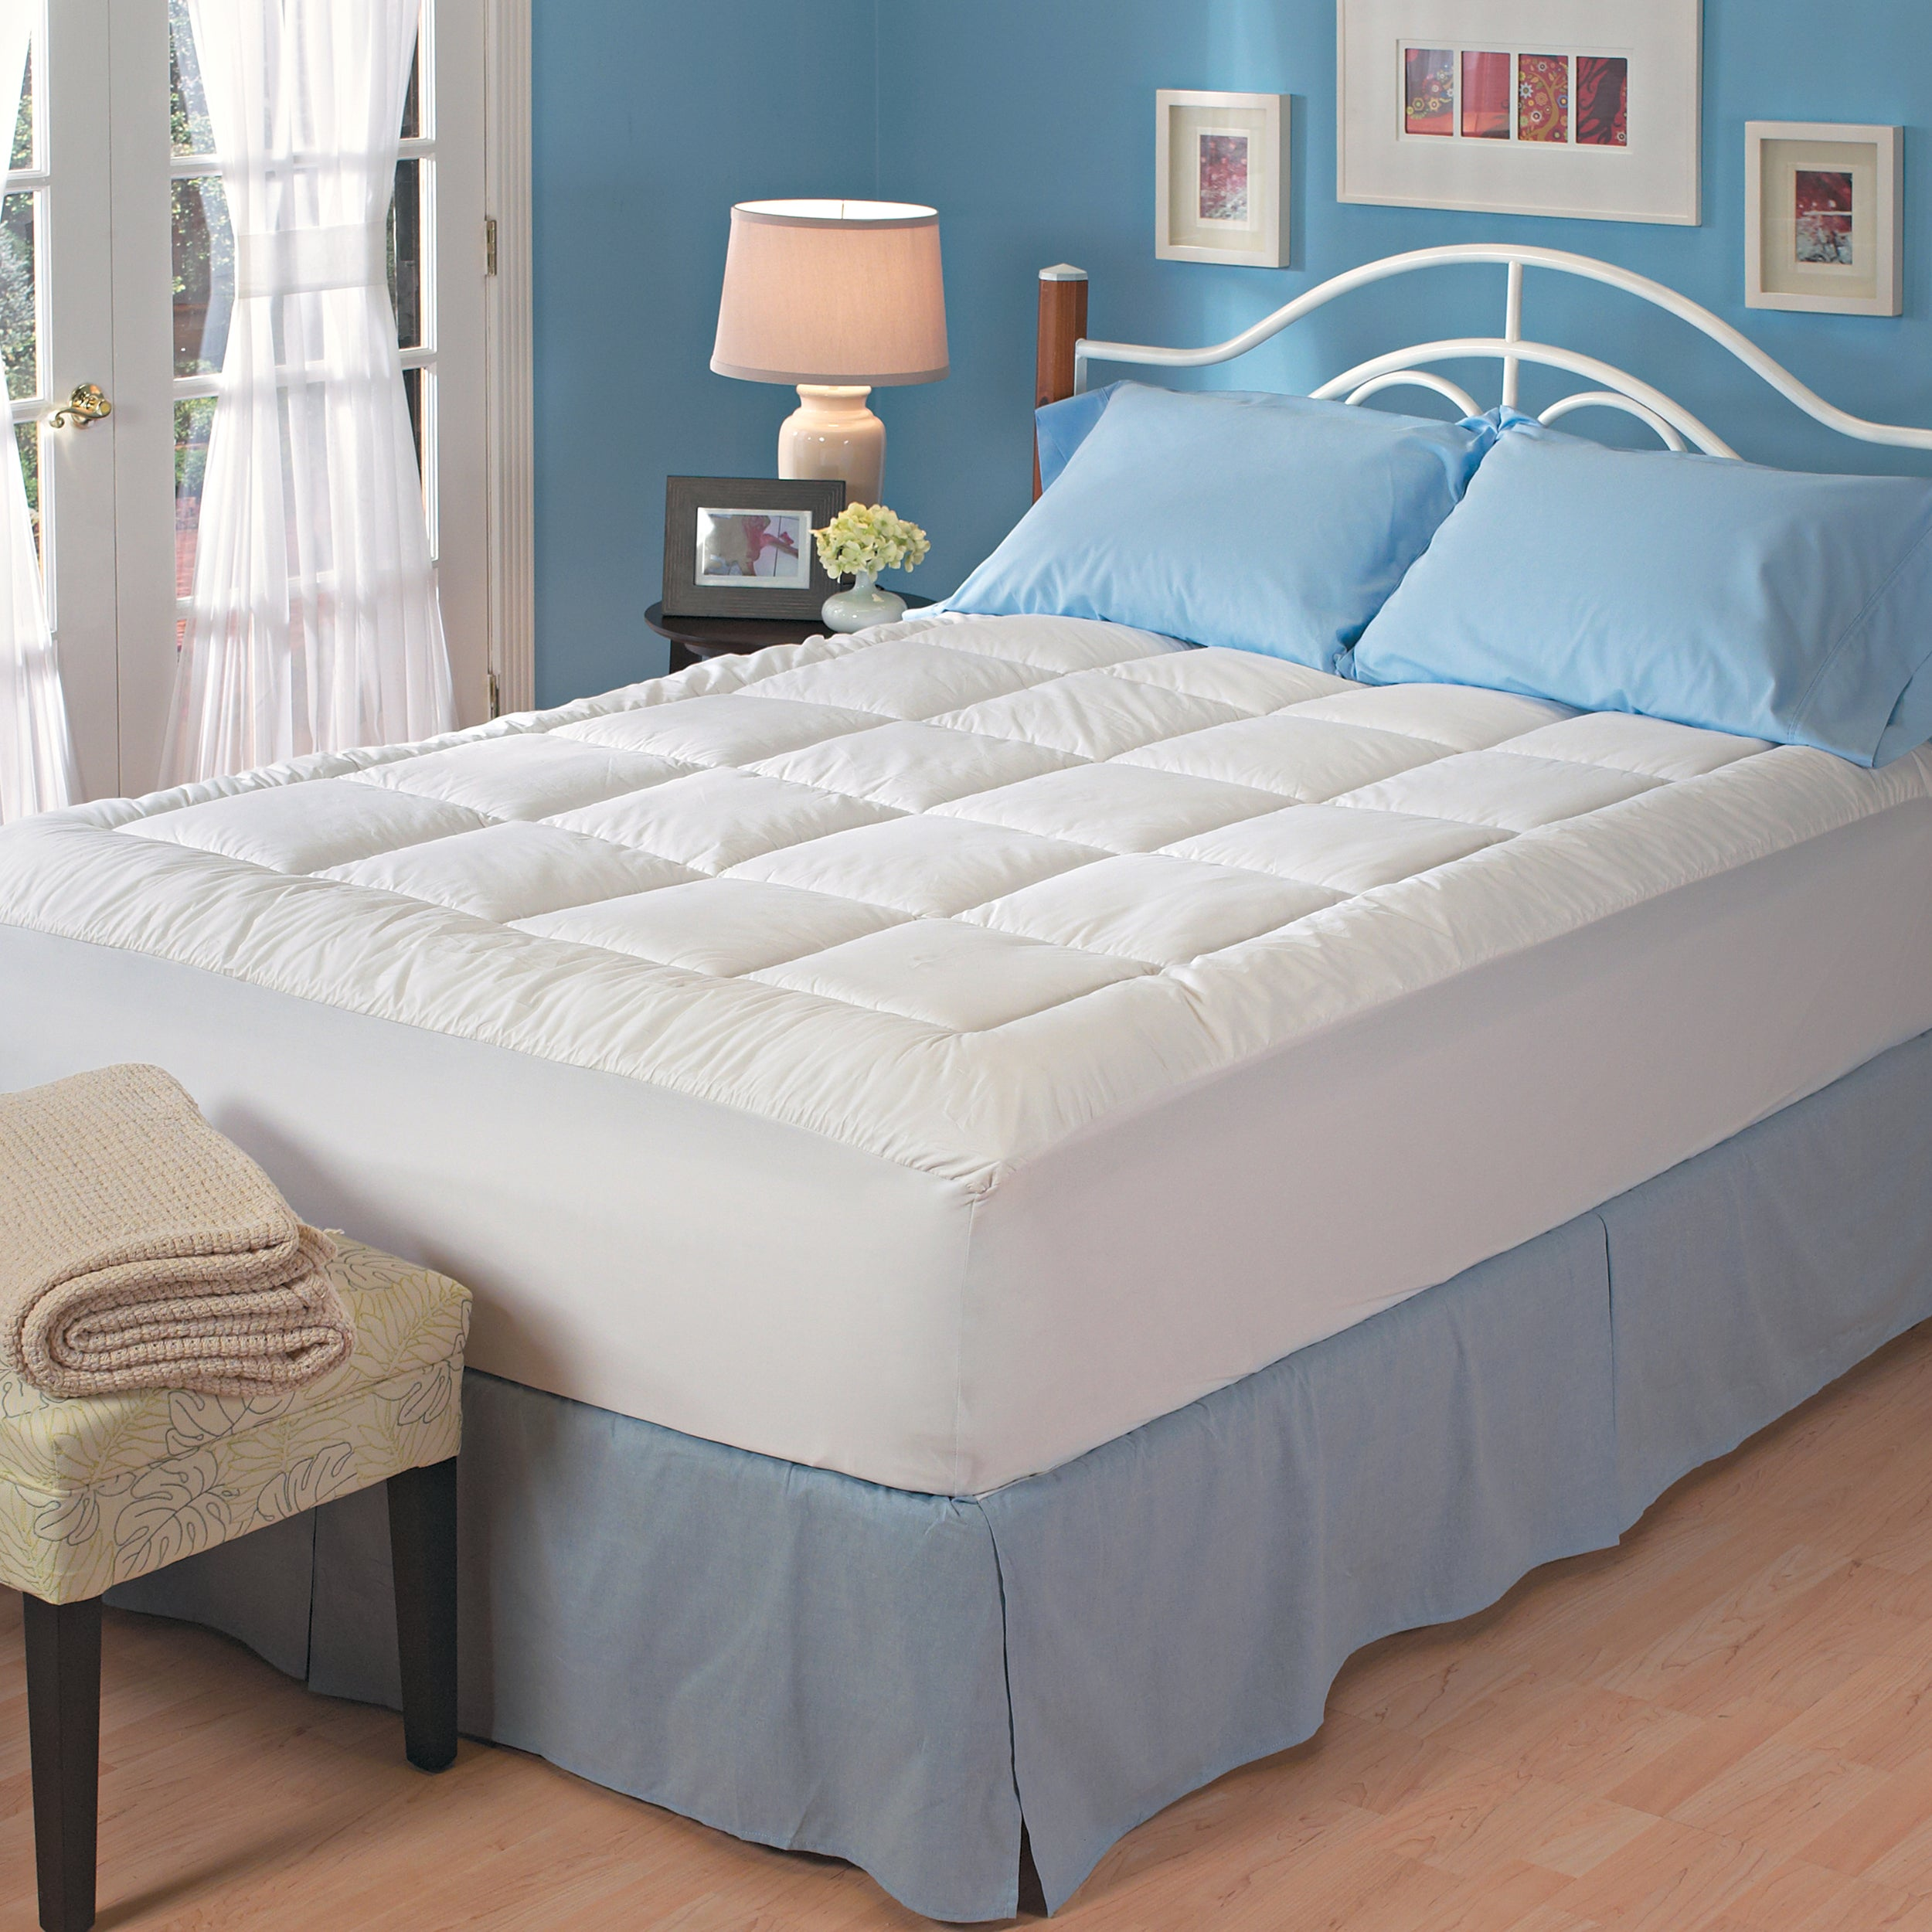 Famous Maker Luxury Comfort Mattress Topper Queen/King/Cal King